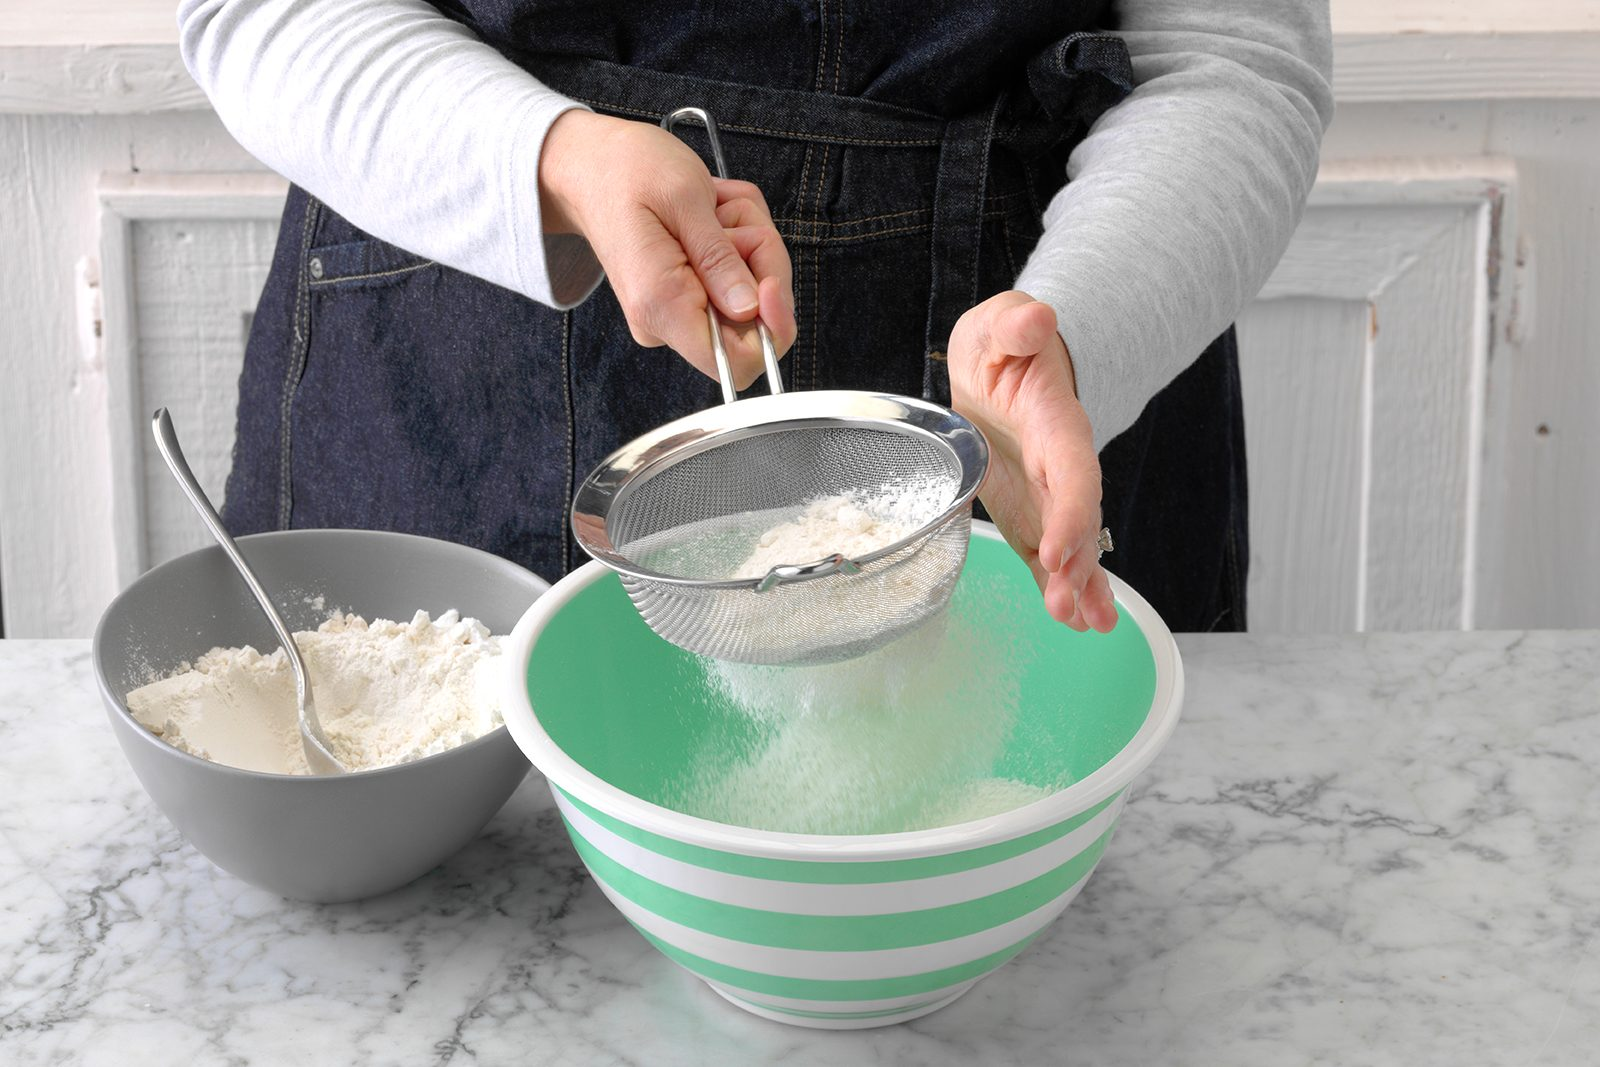 Sifting flour for cake